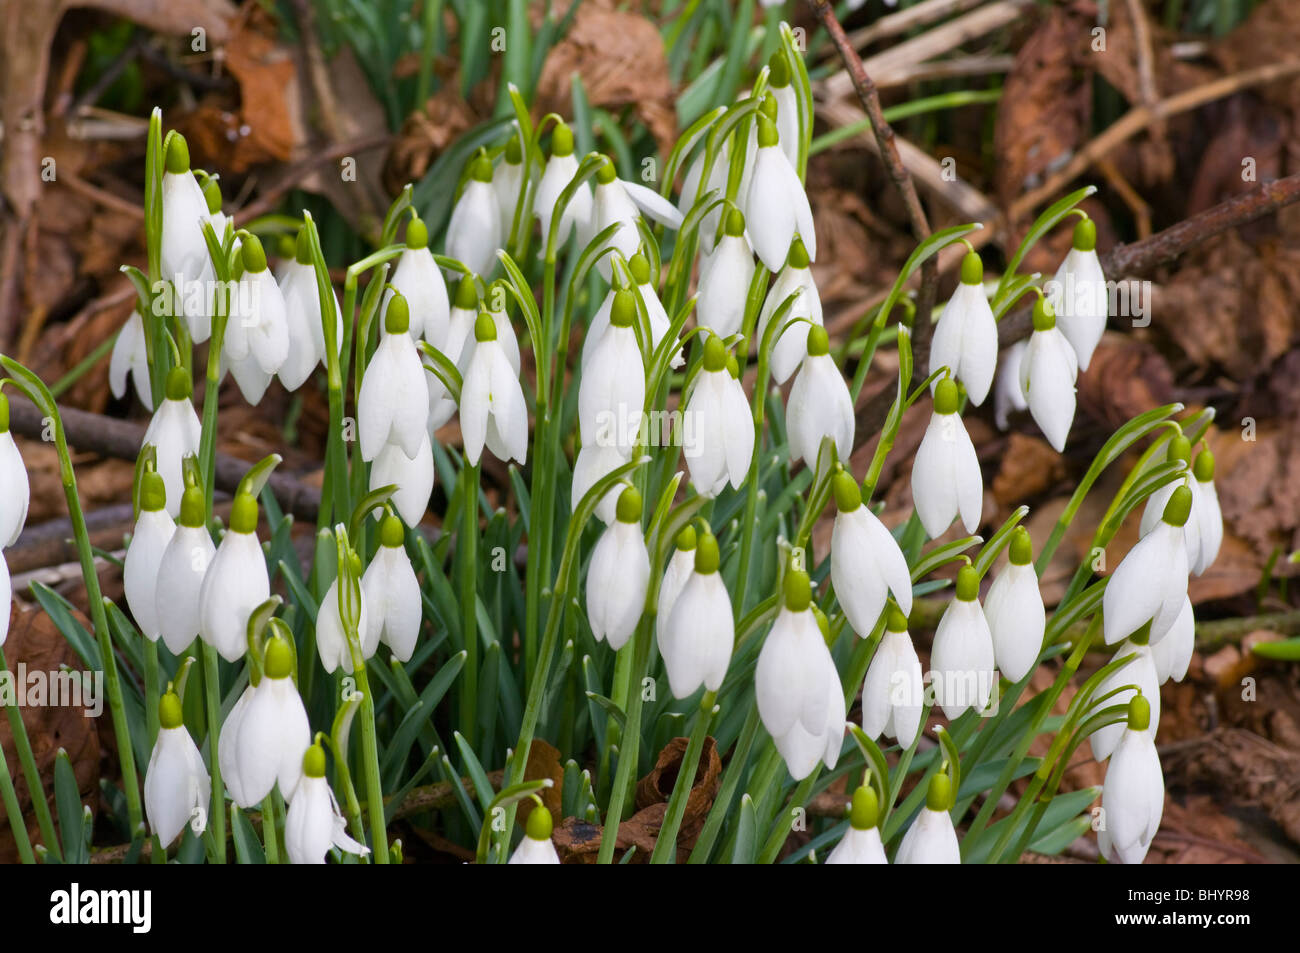 A Clump Of Snowdrops 'galanthus' - Stock Image